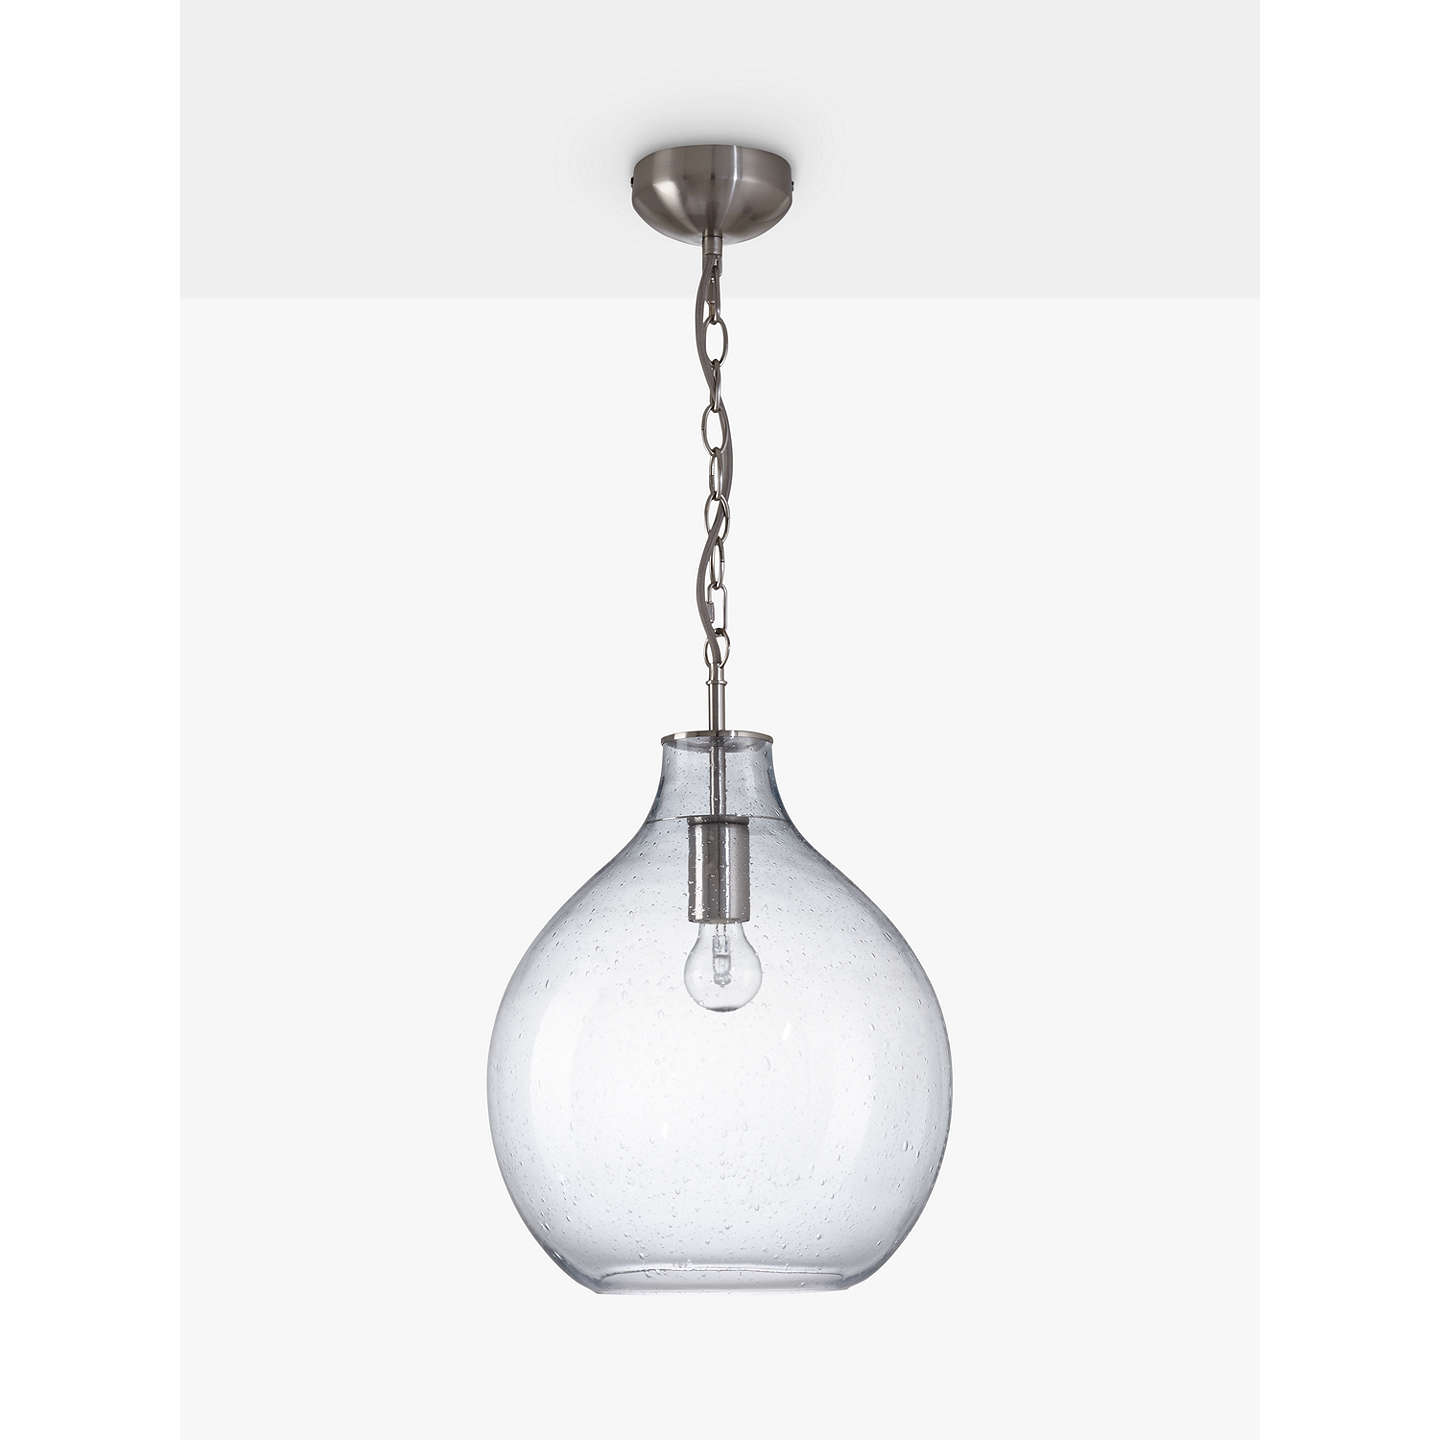 pendant shade ceiling inside chrome delivery fast light clear glass orbital with crackle free